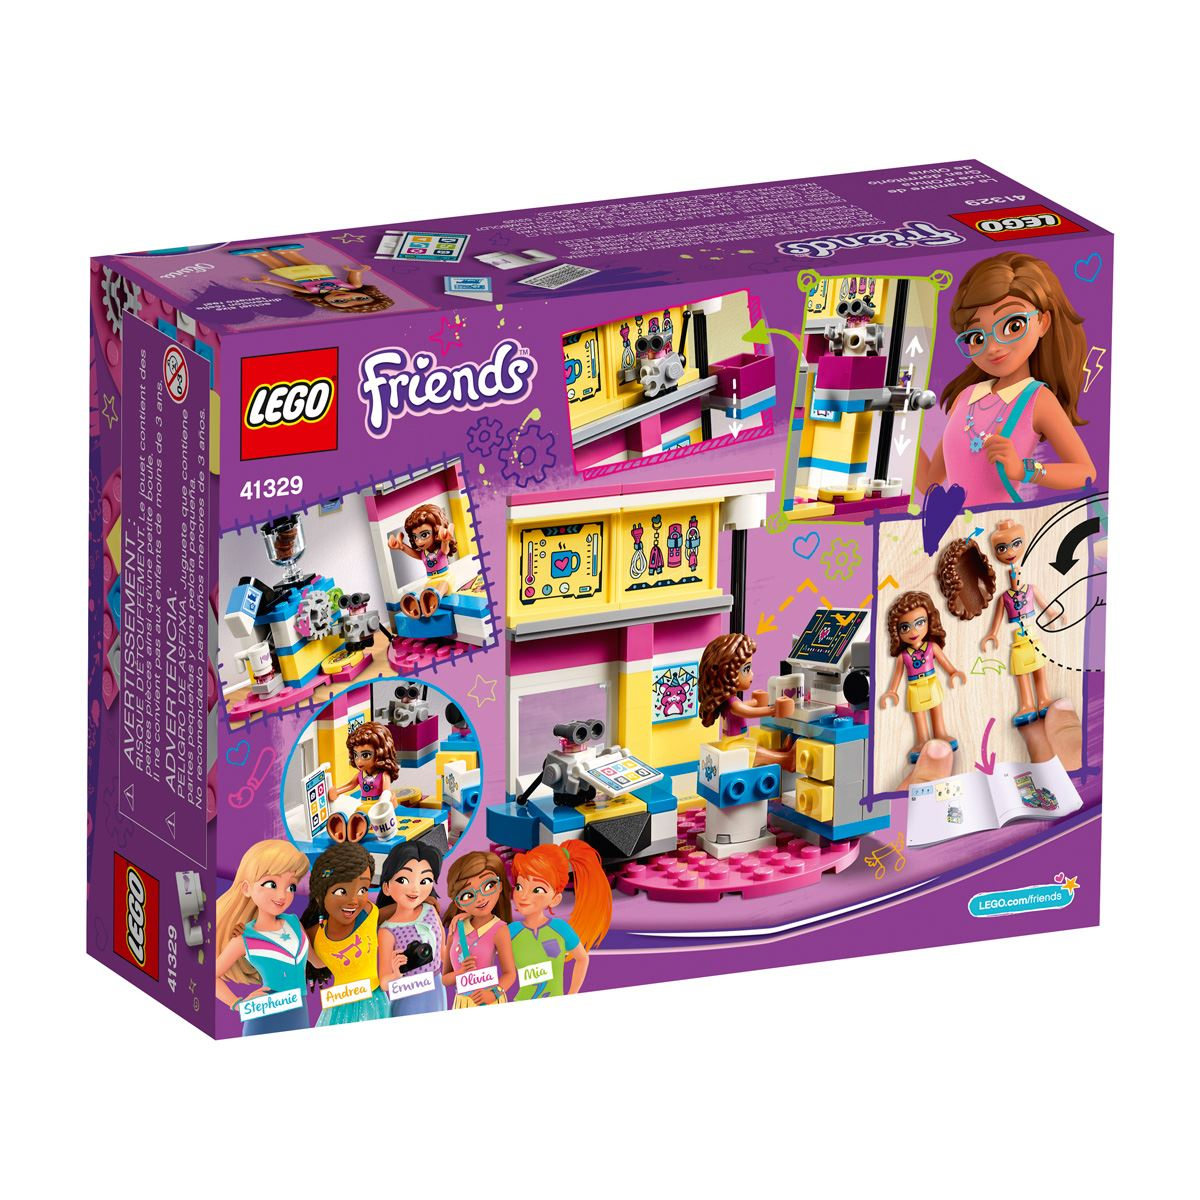 Lego friends gran dormitorio de olivia  - Sanborns